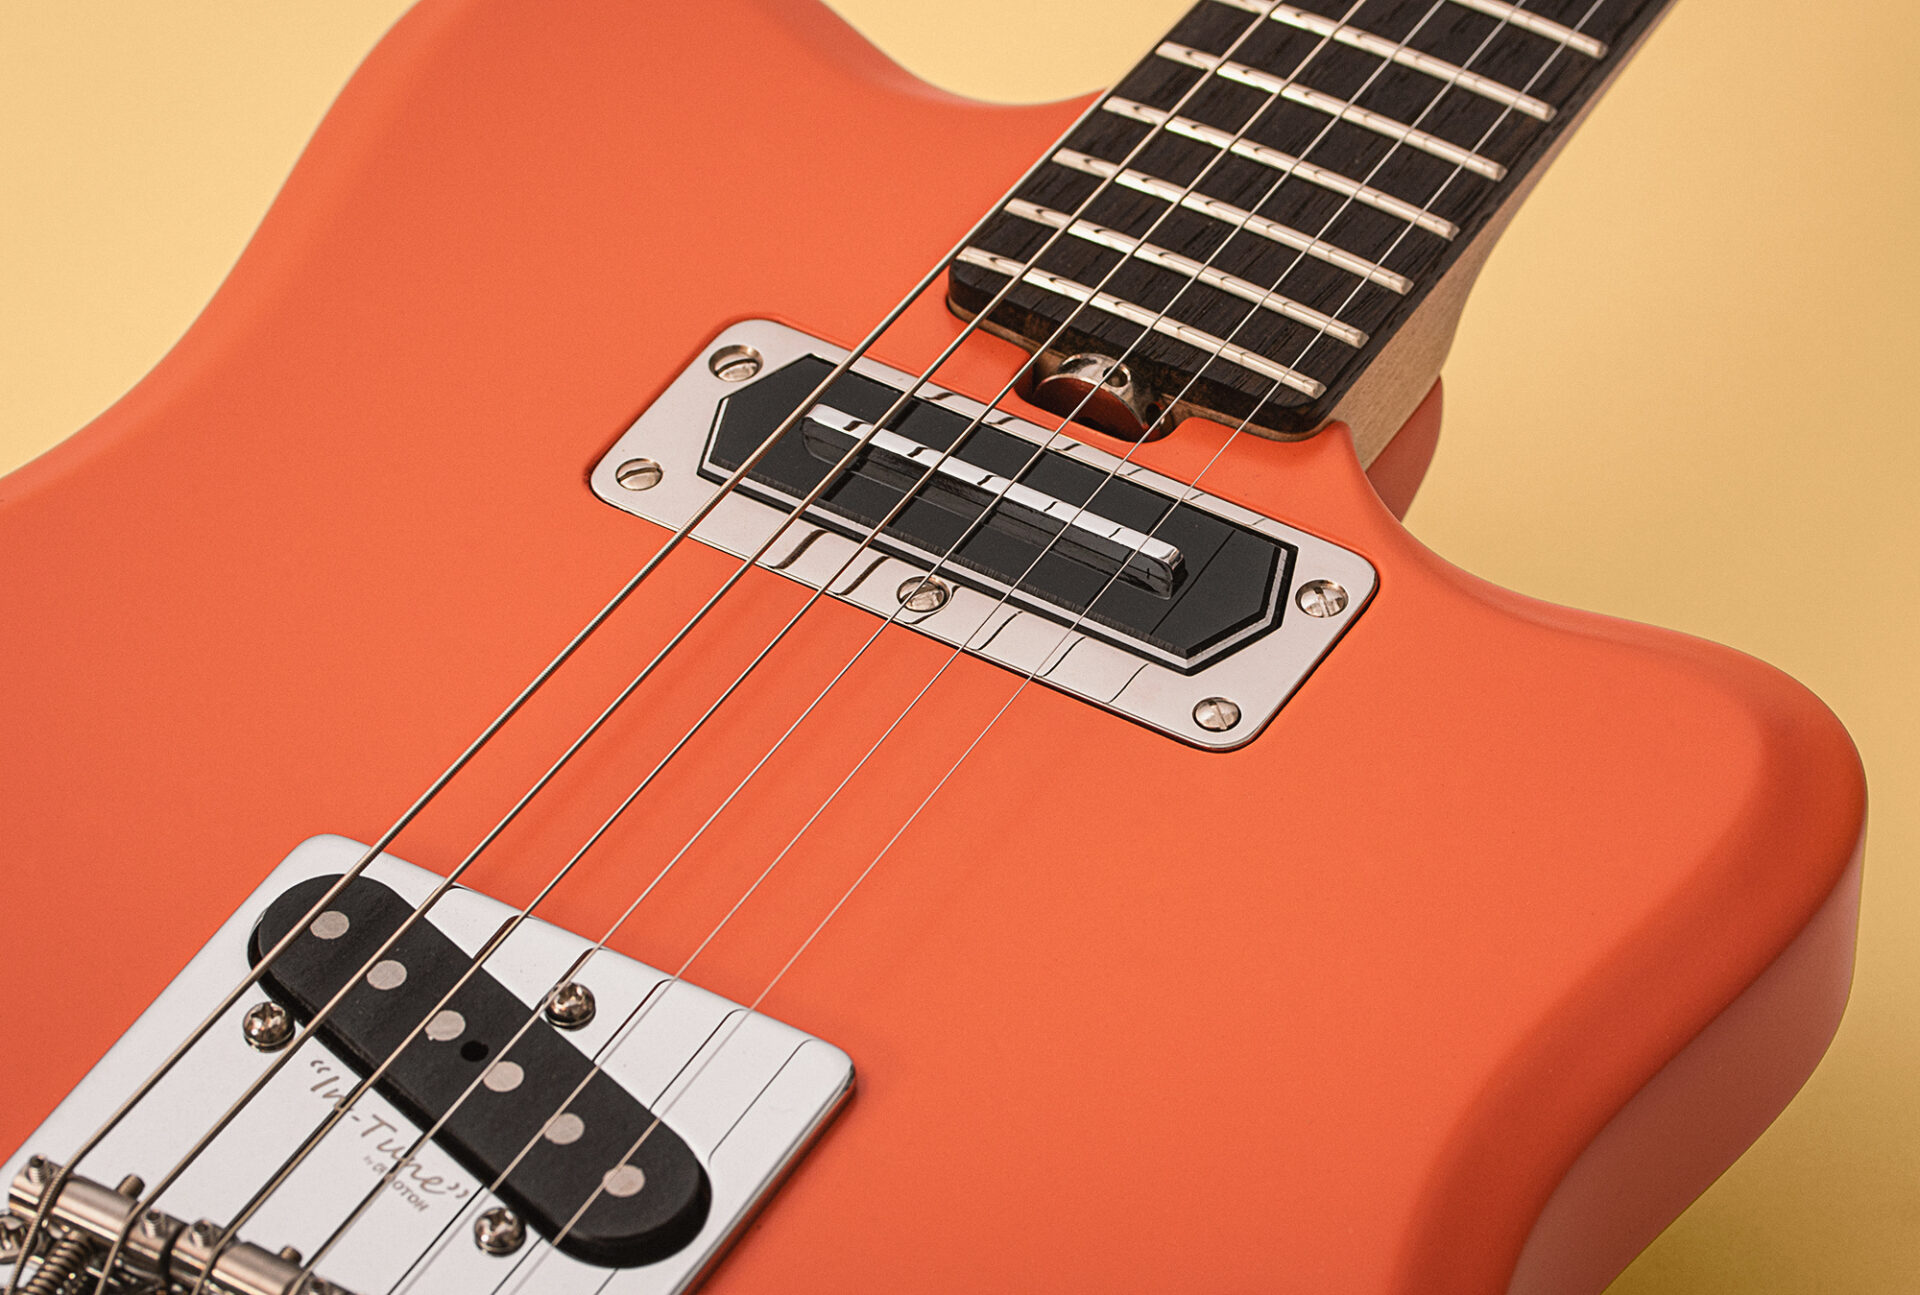 On guitars - Fink Salmon CT - Pickups